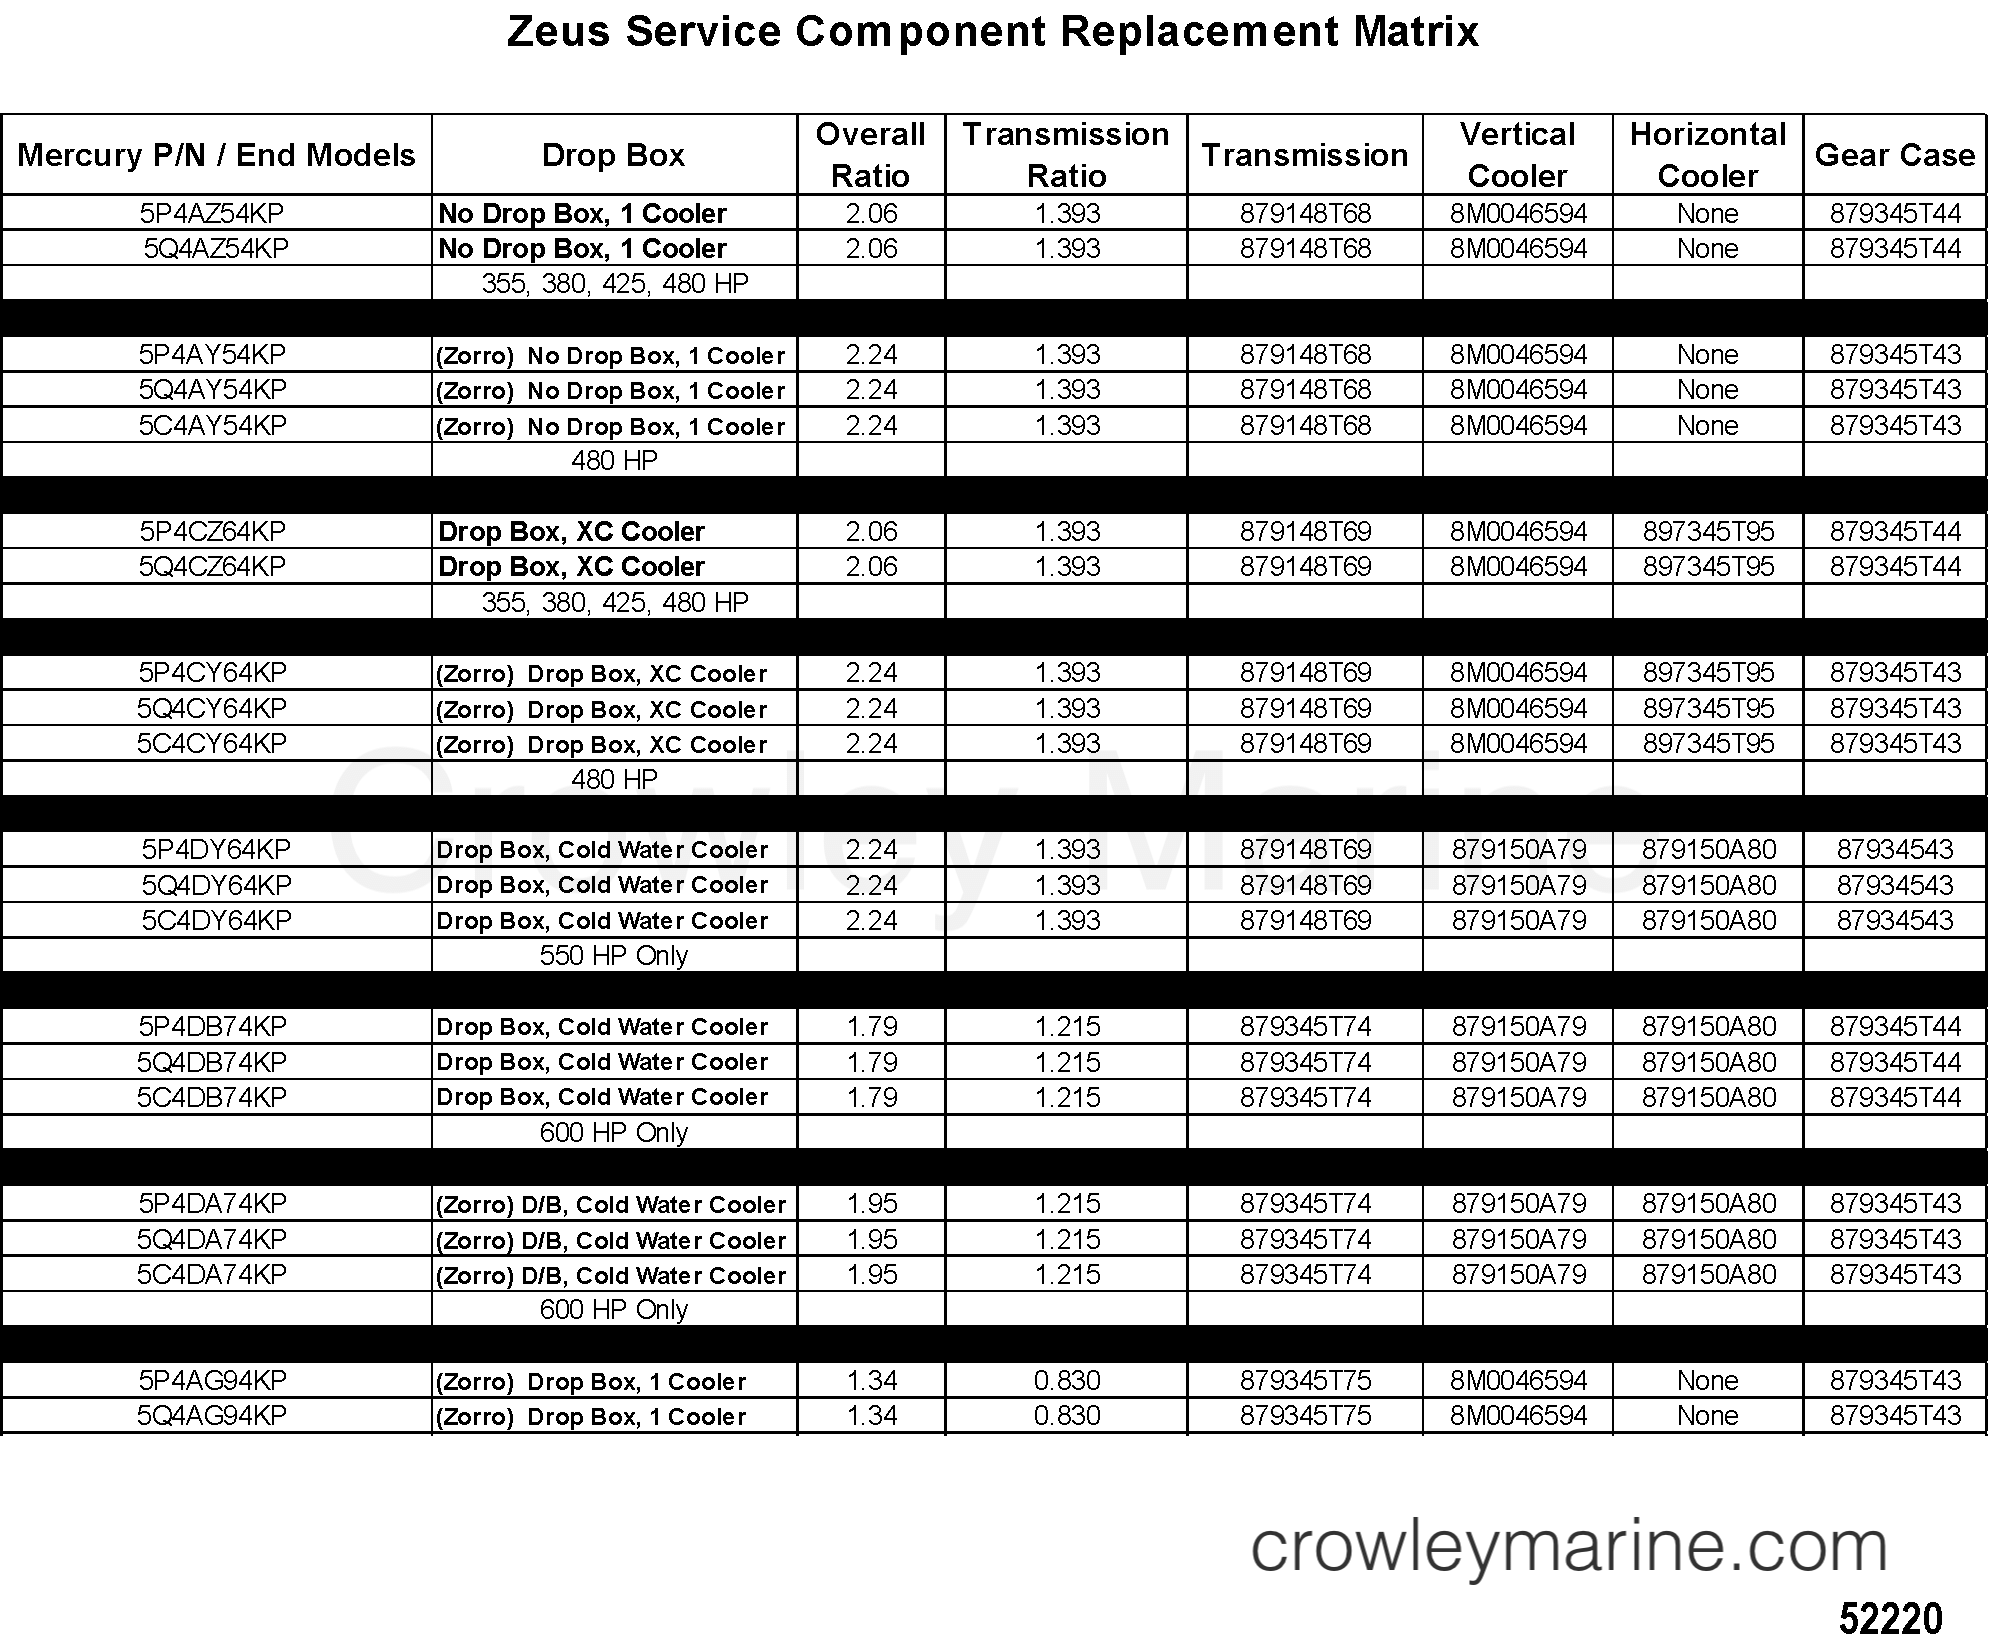 2012 Mercruiser ZEUS DRV [CENTR 2.24] - 5C4CY64KH ZEUS SERVICE COMPONENT REPLACEMENT MATRIX section